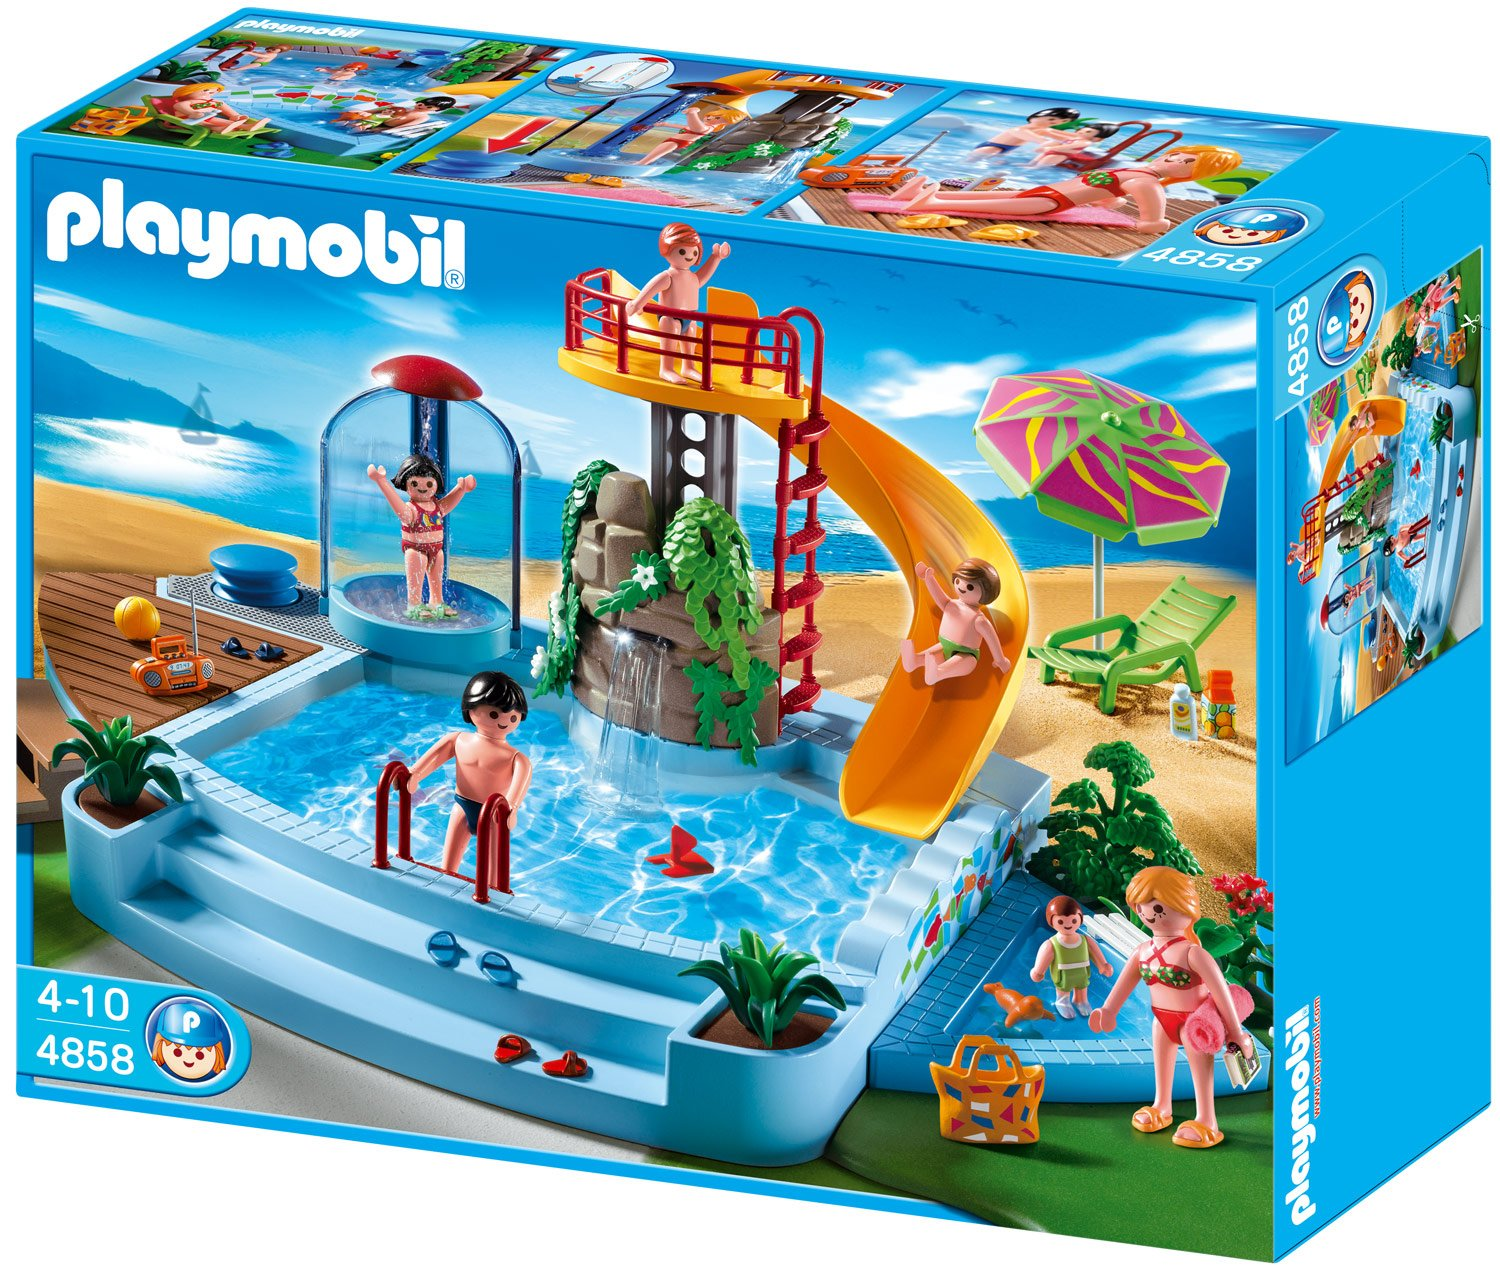 Image Gallery Playmobil Pool